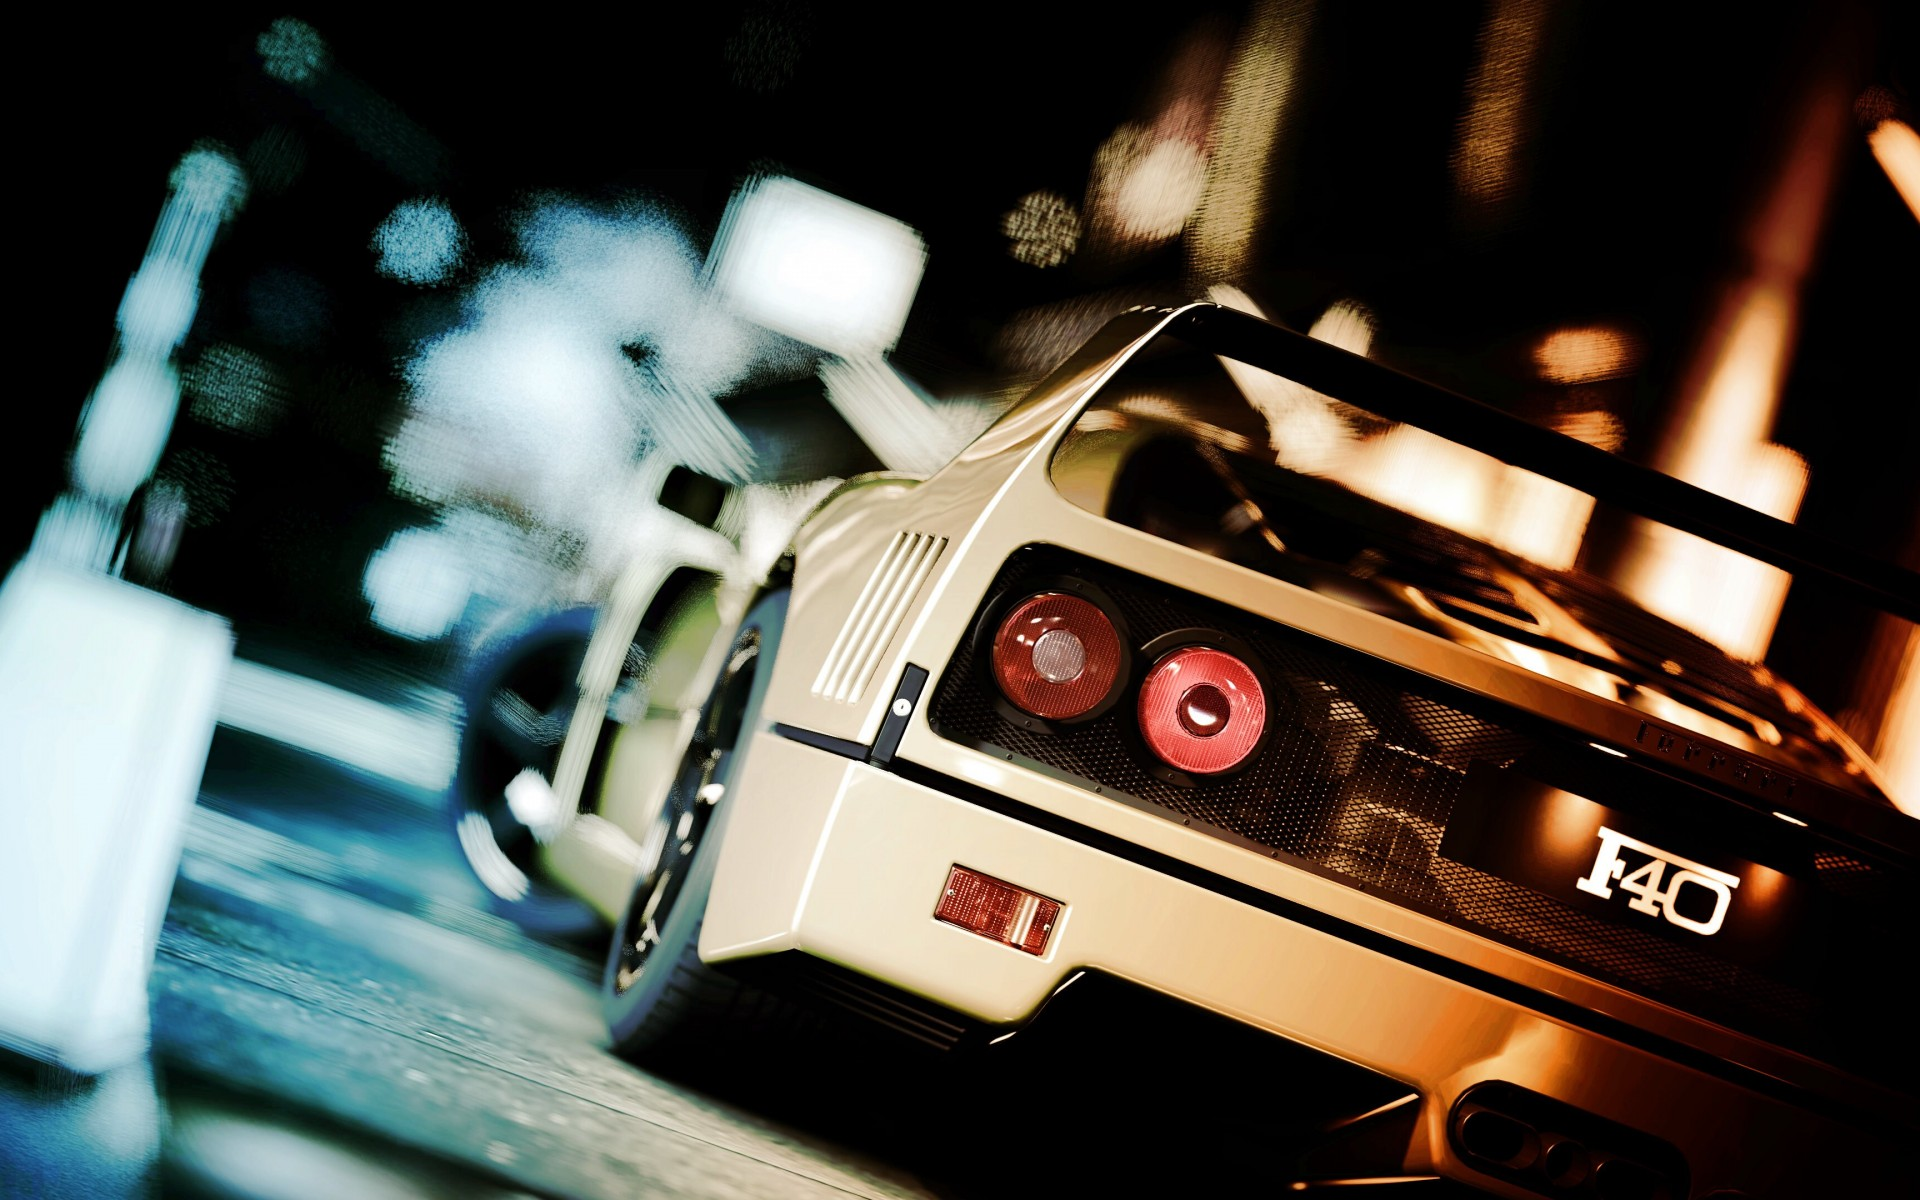 Ferrari F40 Gran Turismo Wallpaper for Desktop 1920x1200